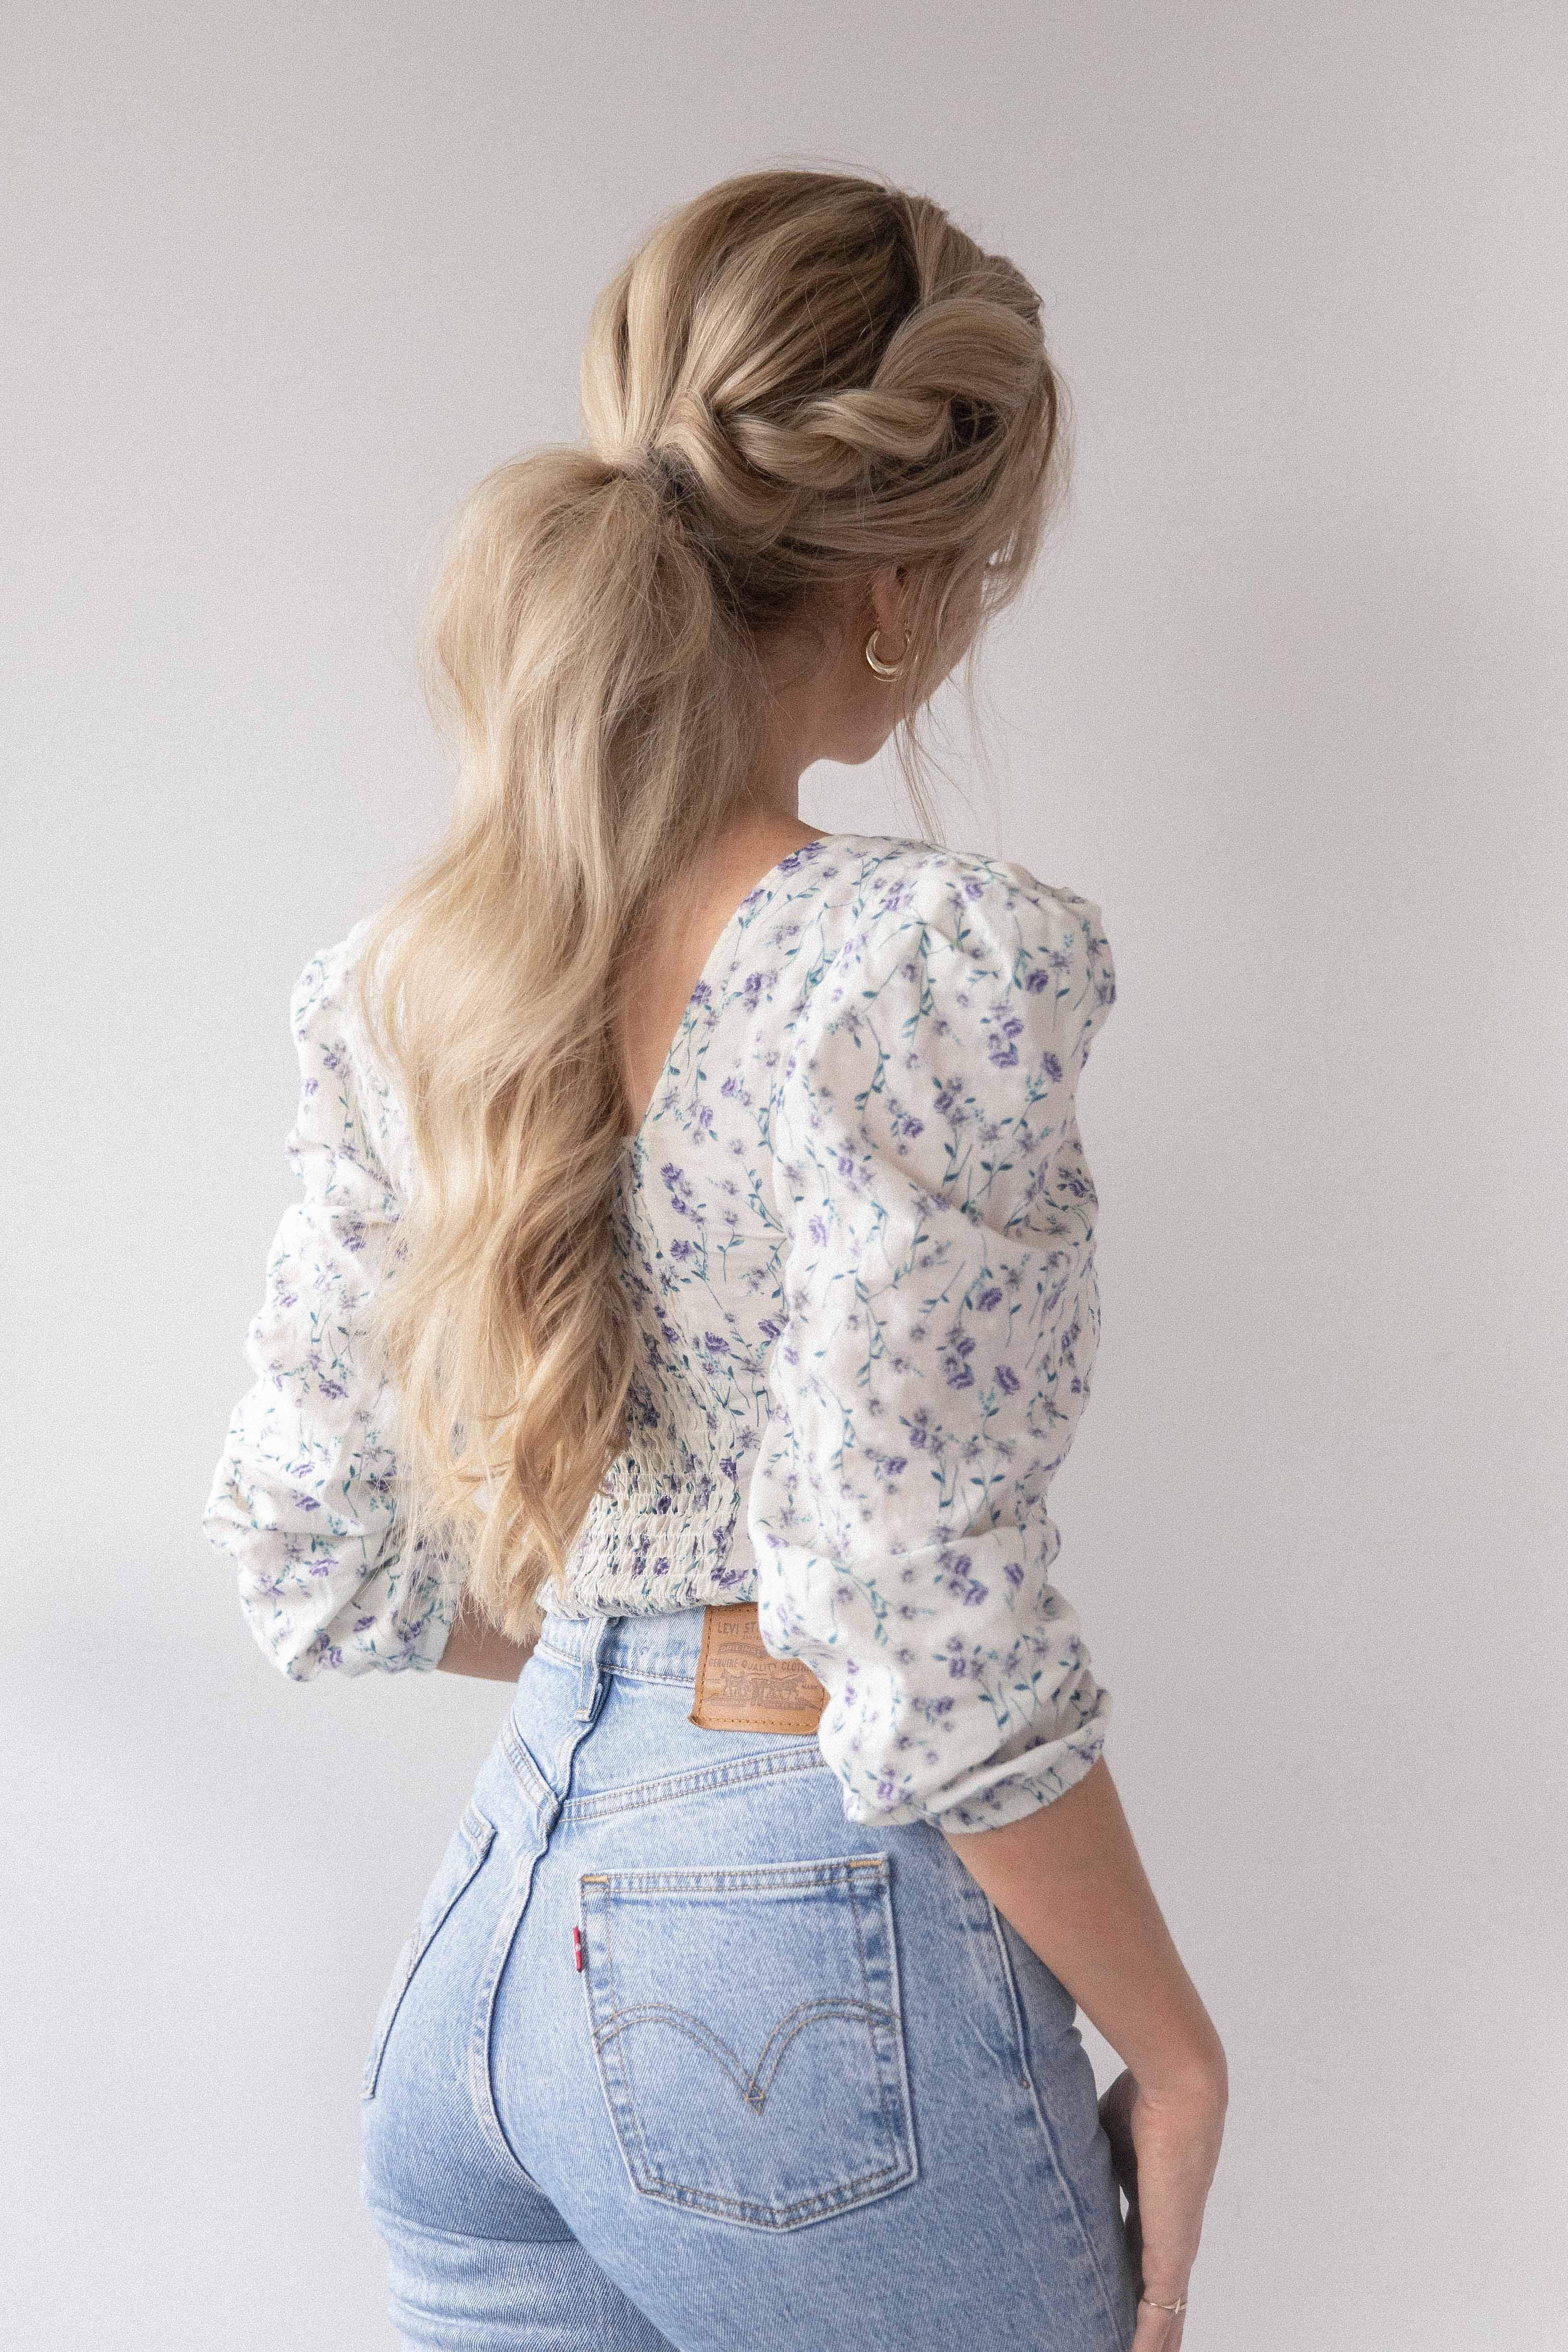 EASY BACK TO SCHOOL HAIRSTYLES 2020 💕 - Alex Gabou